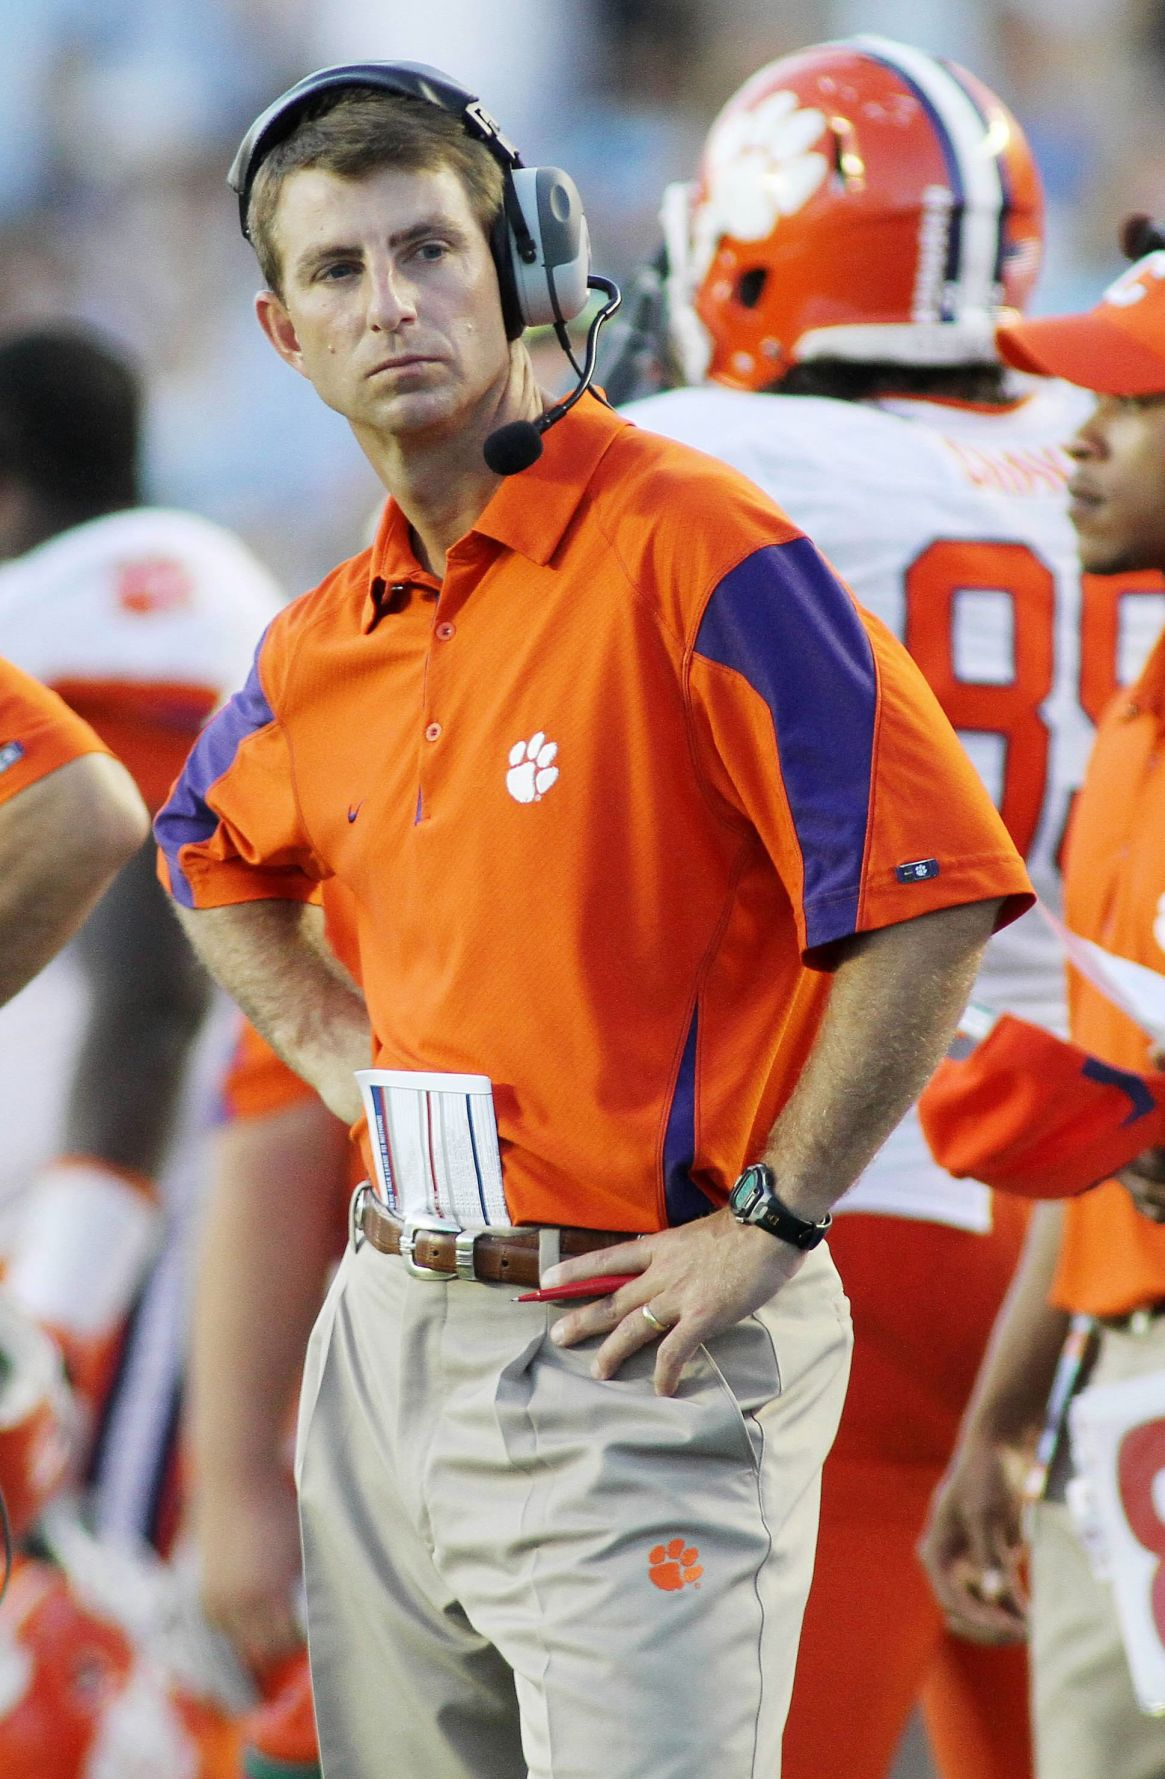 Travel expenses and recruiting footprint suggest ACC is still best home for Clemson